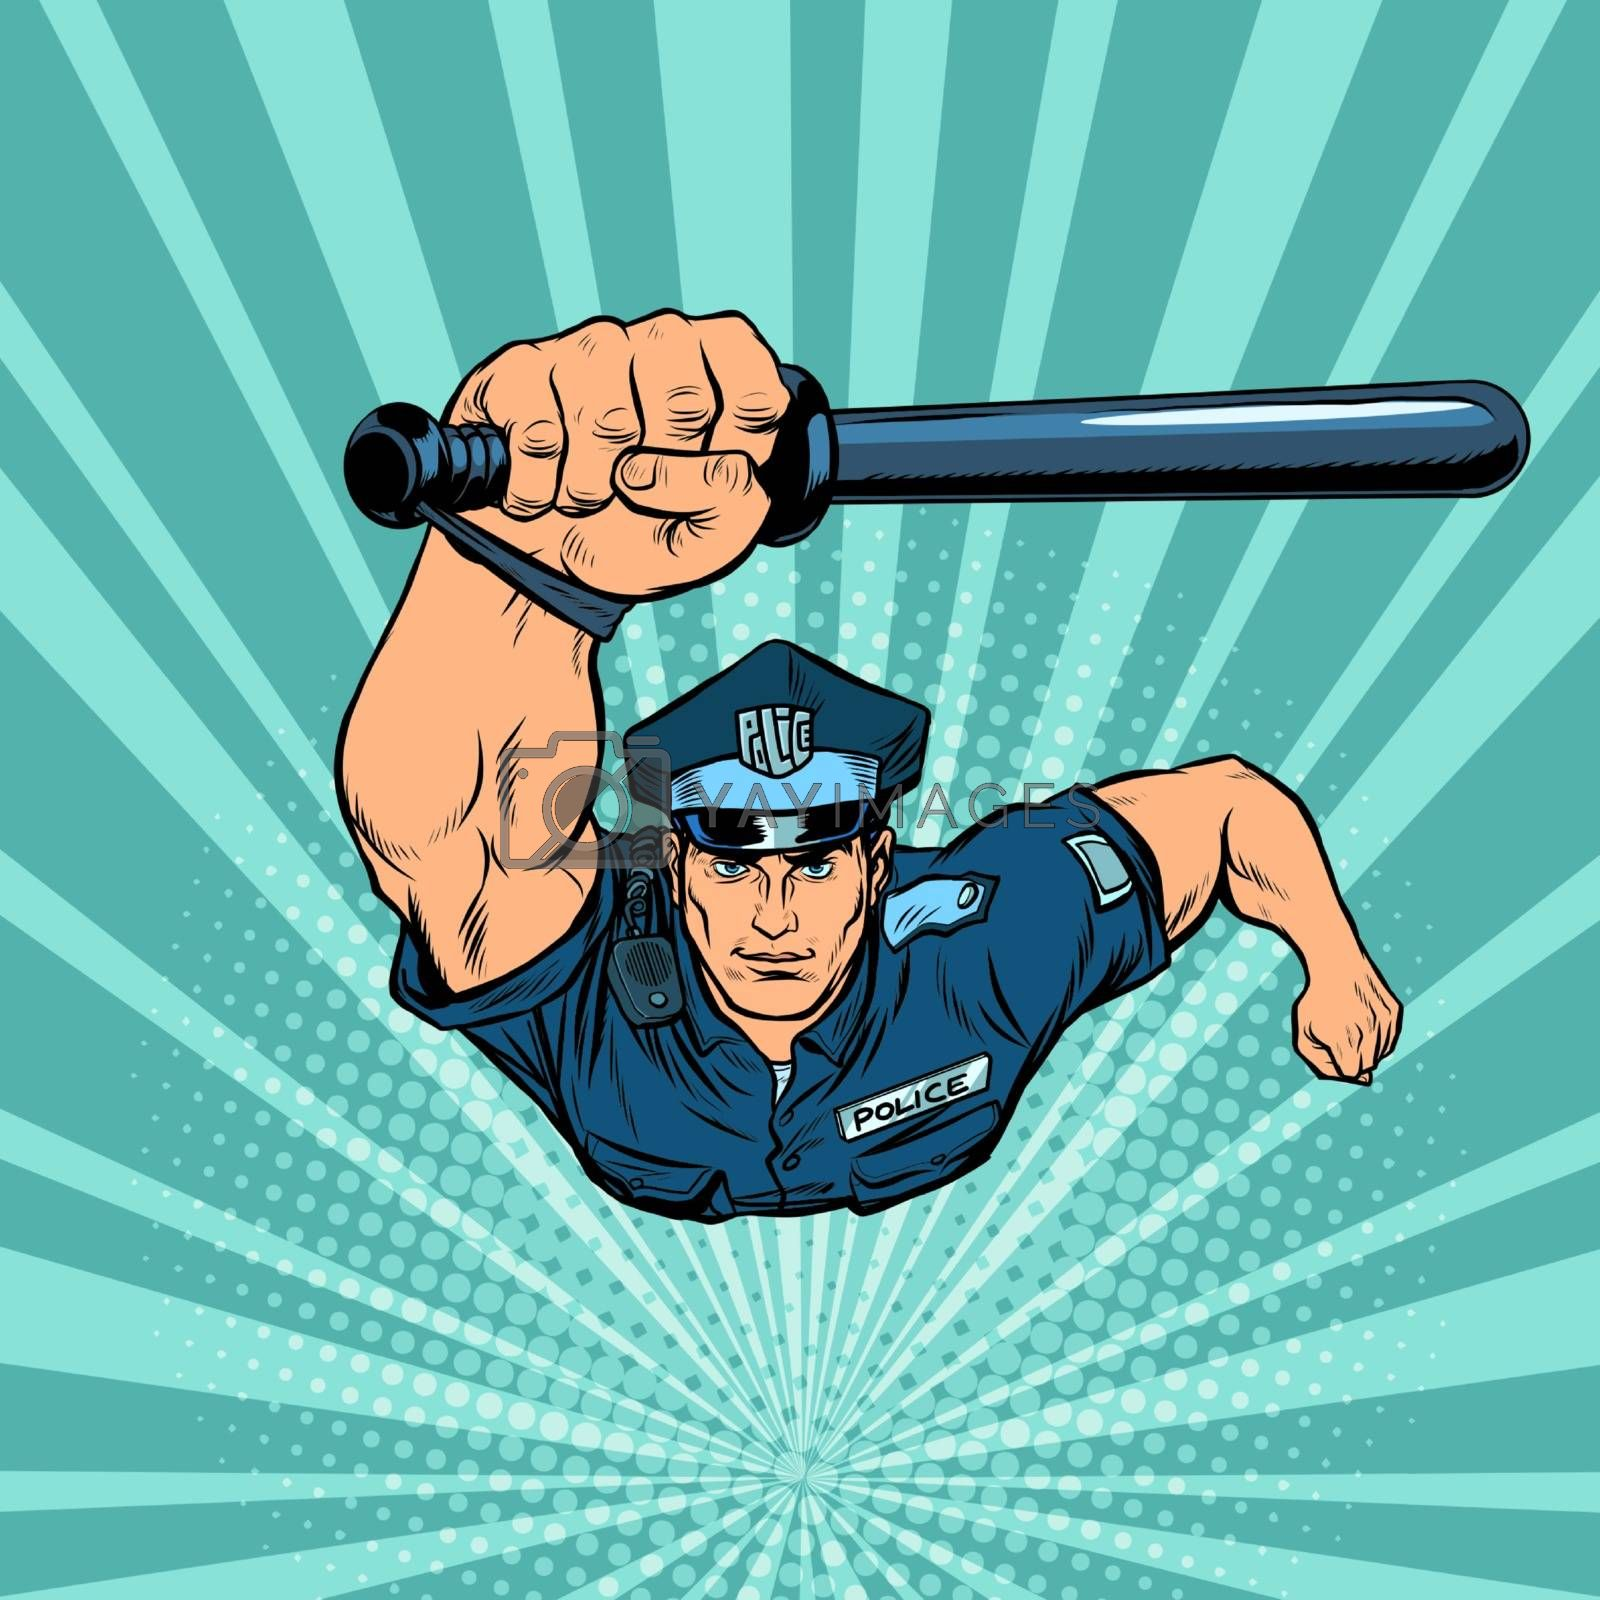 Police officer with a baton. Pop art retro vector illustration 50s 60s style